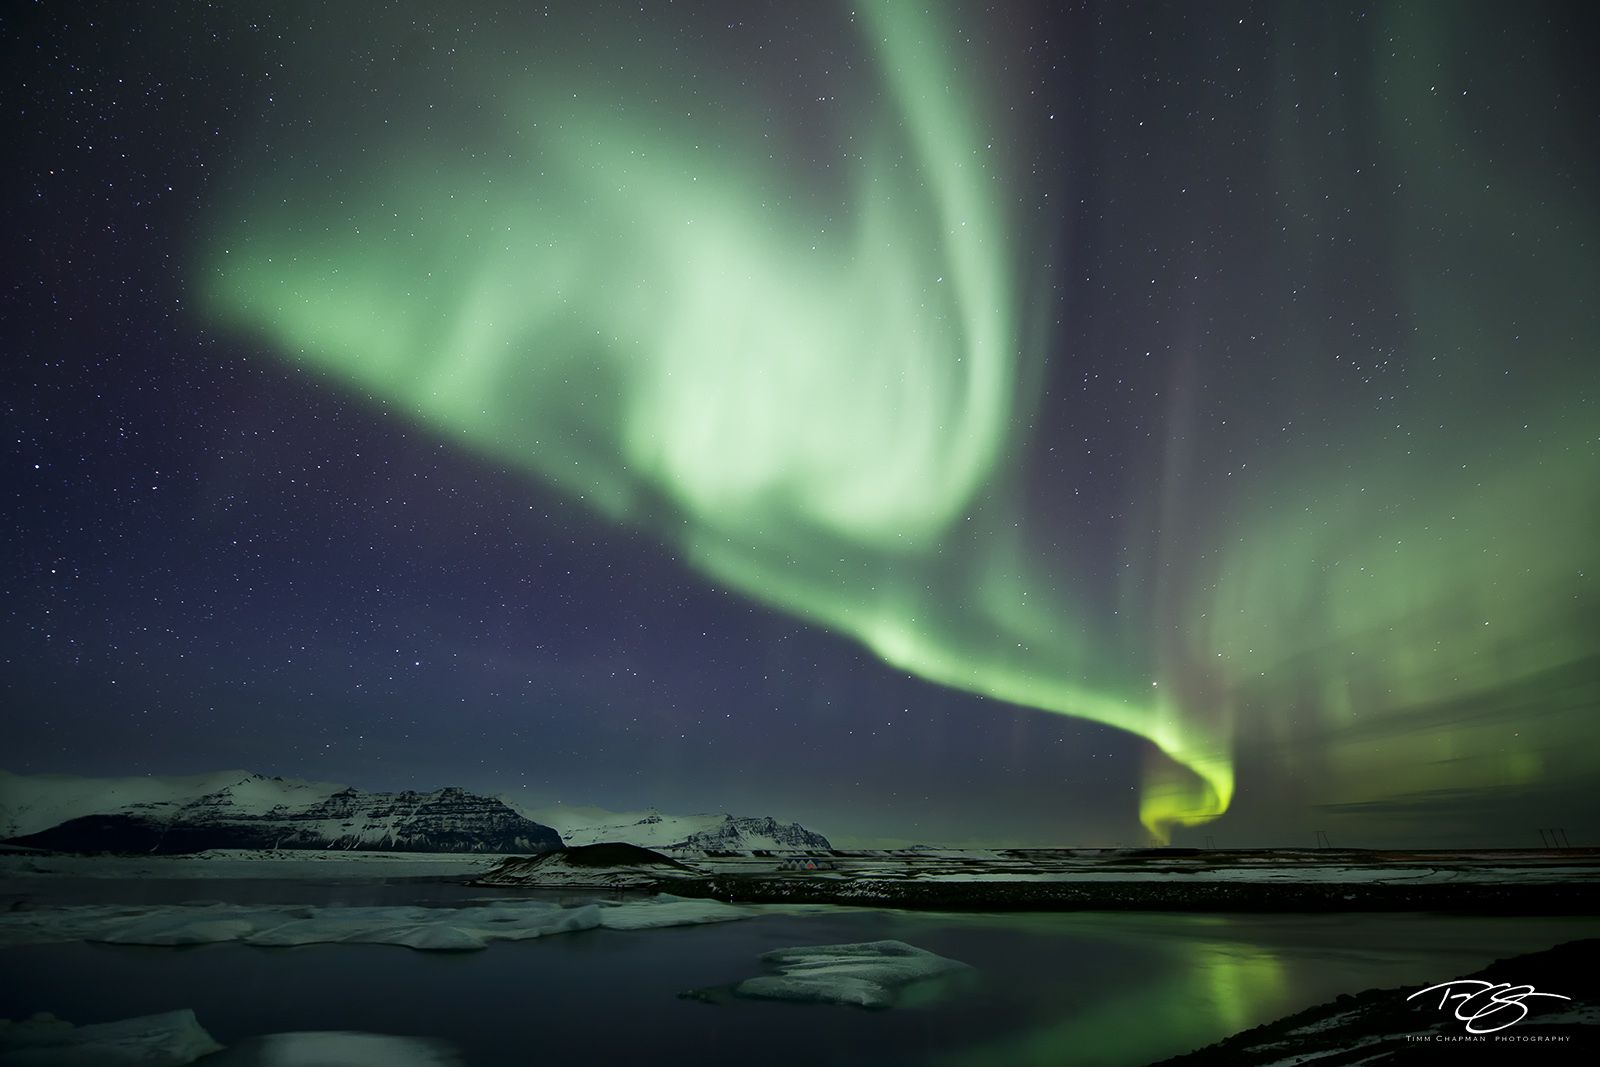 iceland; aurora; borealis; ribbon of light; jokulsarlon; Jökulsárlón; glacier lagoon; mountains; reflection; water; green; violet; stars; northern lights; spirit; coronal mass ejection; solar flare; e, photo